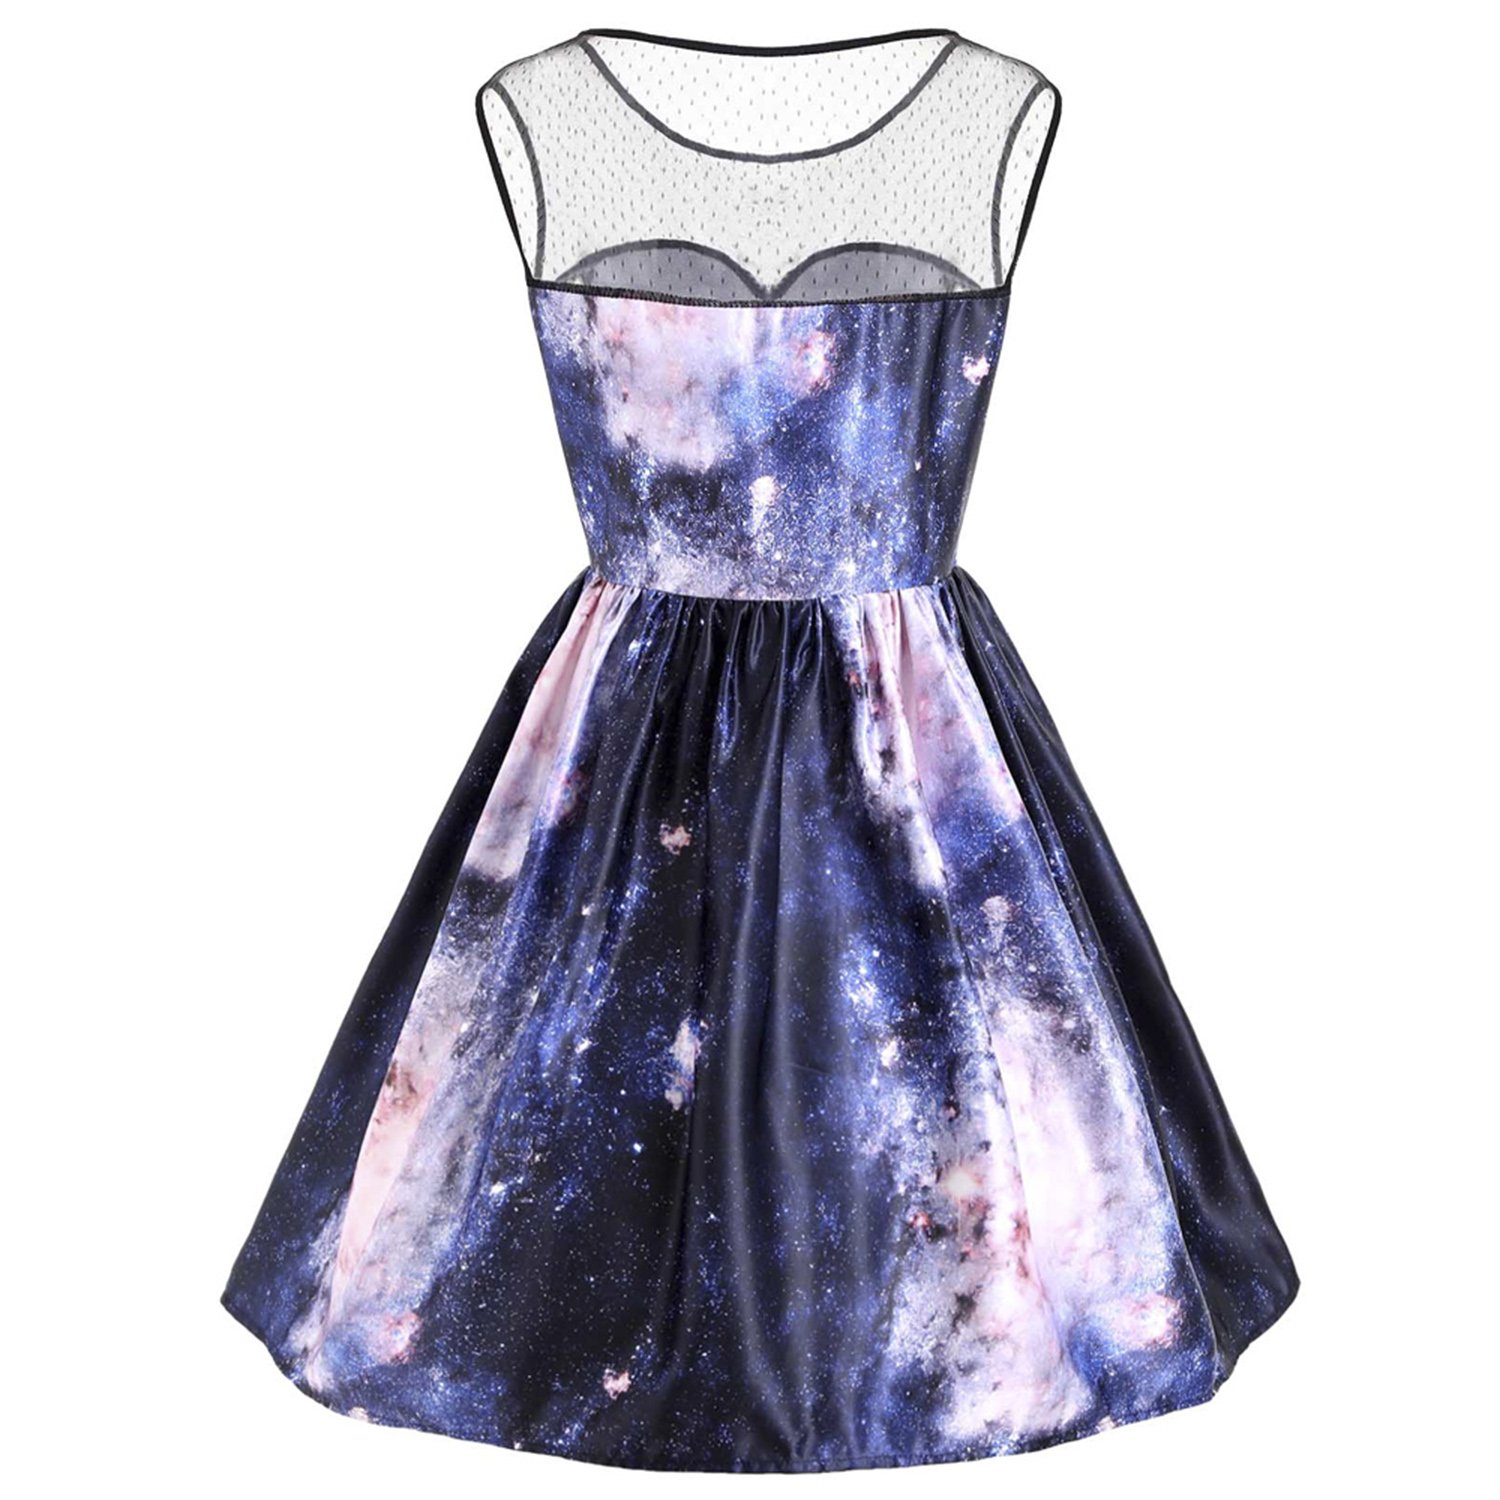 BCVHGD Vintage Sleeveless Galaxy 3D Print Autumn Women Dress Party Vestidos De Fiesta at Amazon Womens Clothing store: